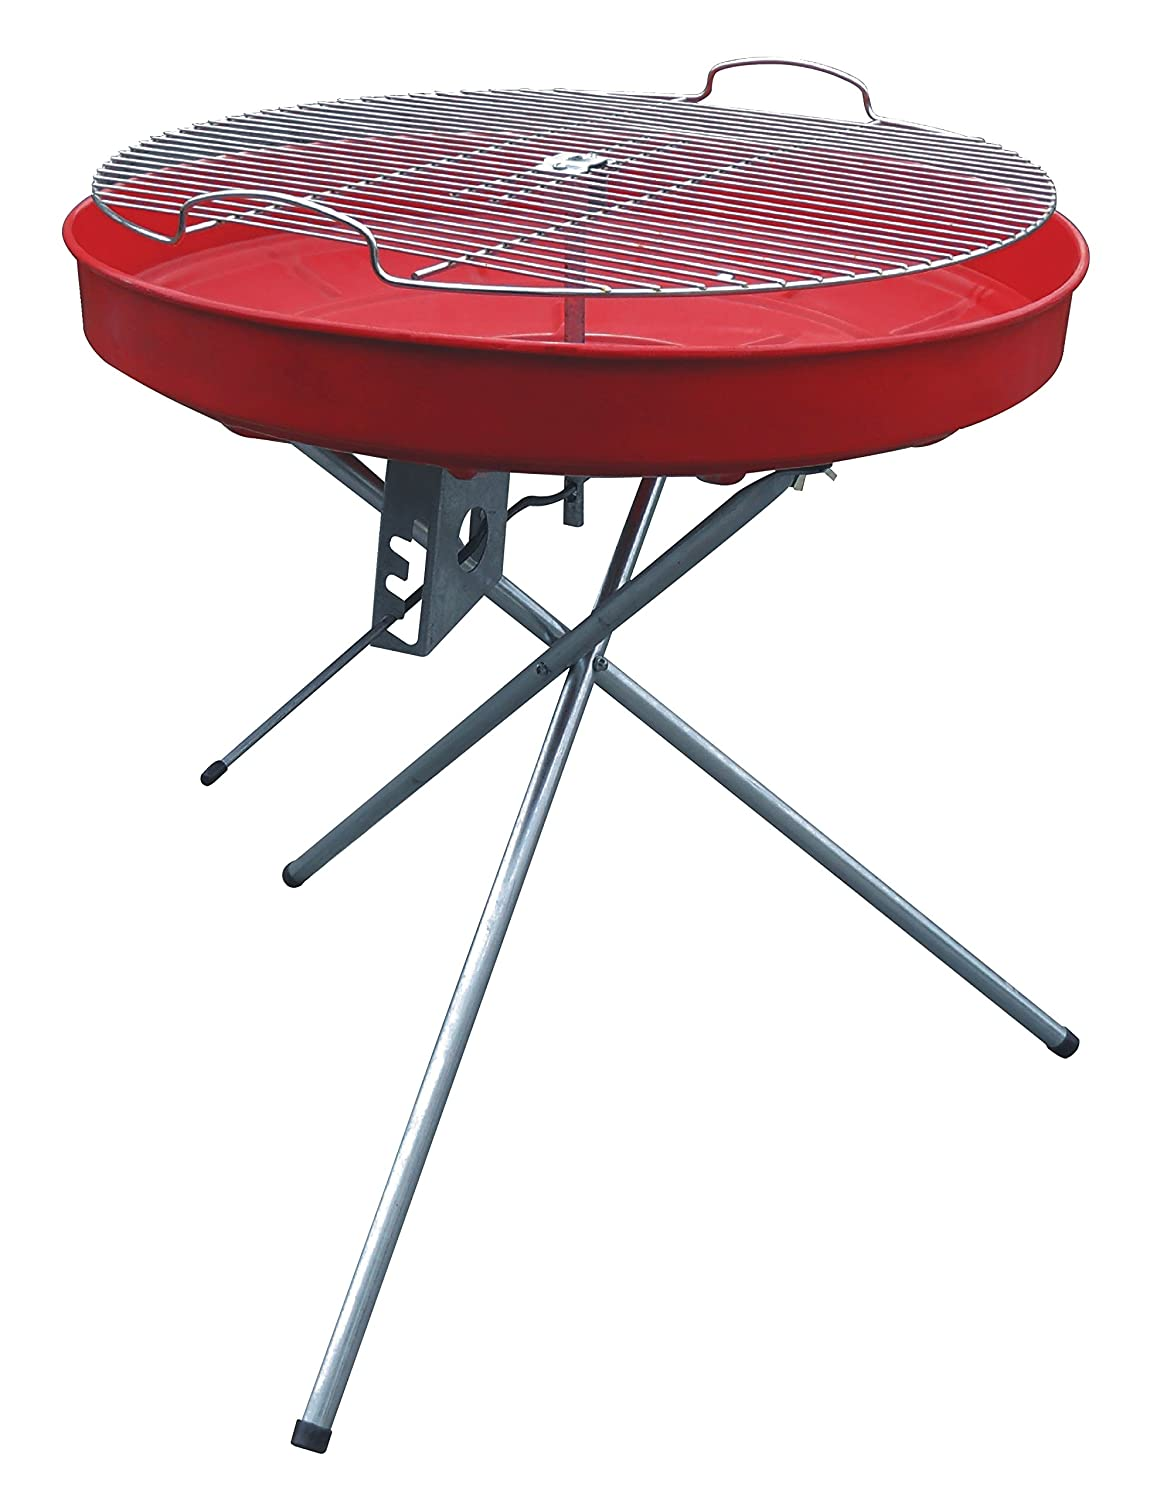 Toolway 185024 Barbeque Grill 24 Charcoal Canadian-Style